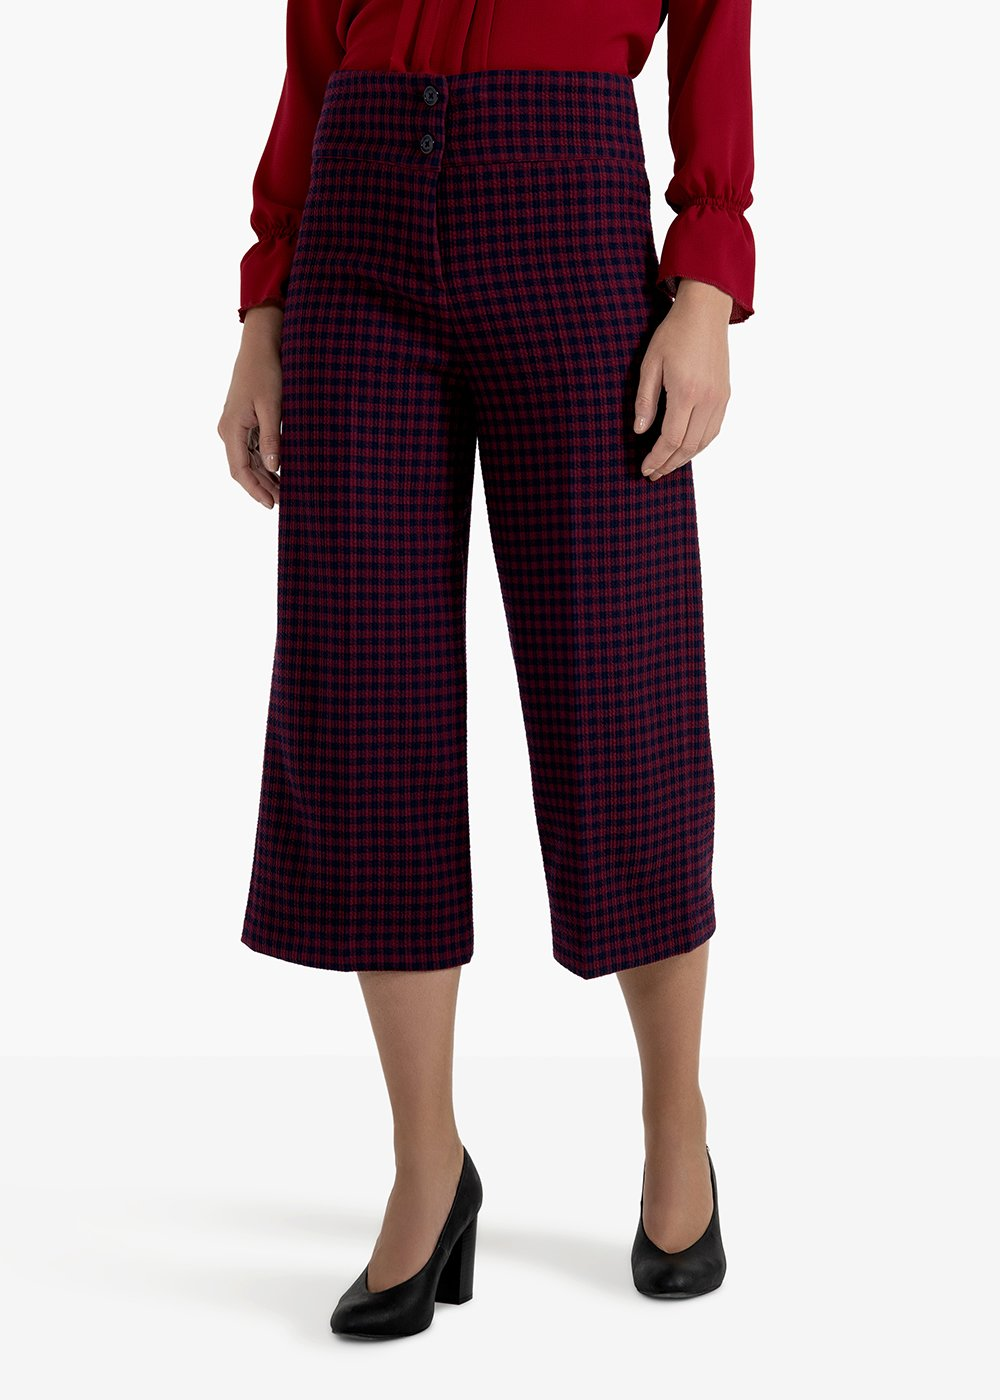 Pantaloni palazzo Piquet dal fit corto fantasia micro-check - Bordeaux /  Blue Fantasia - Donna